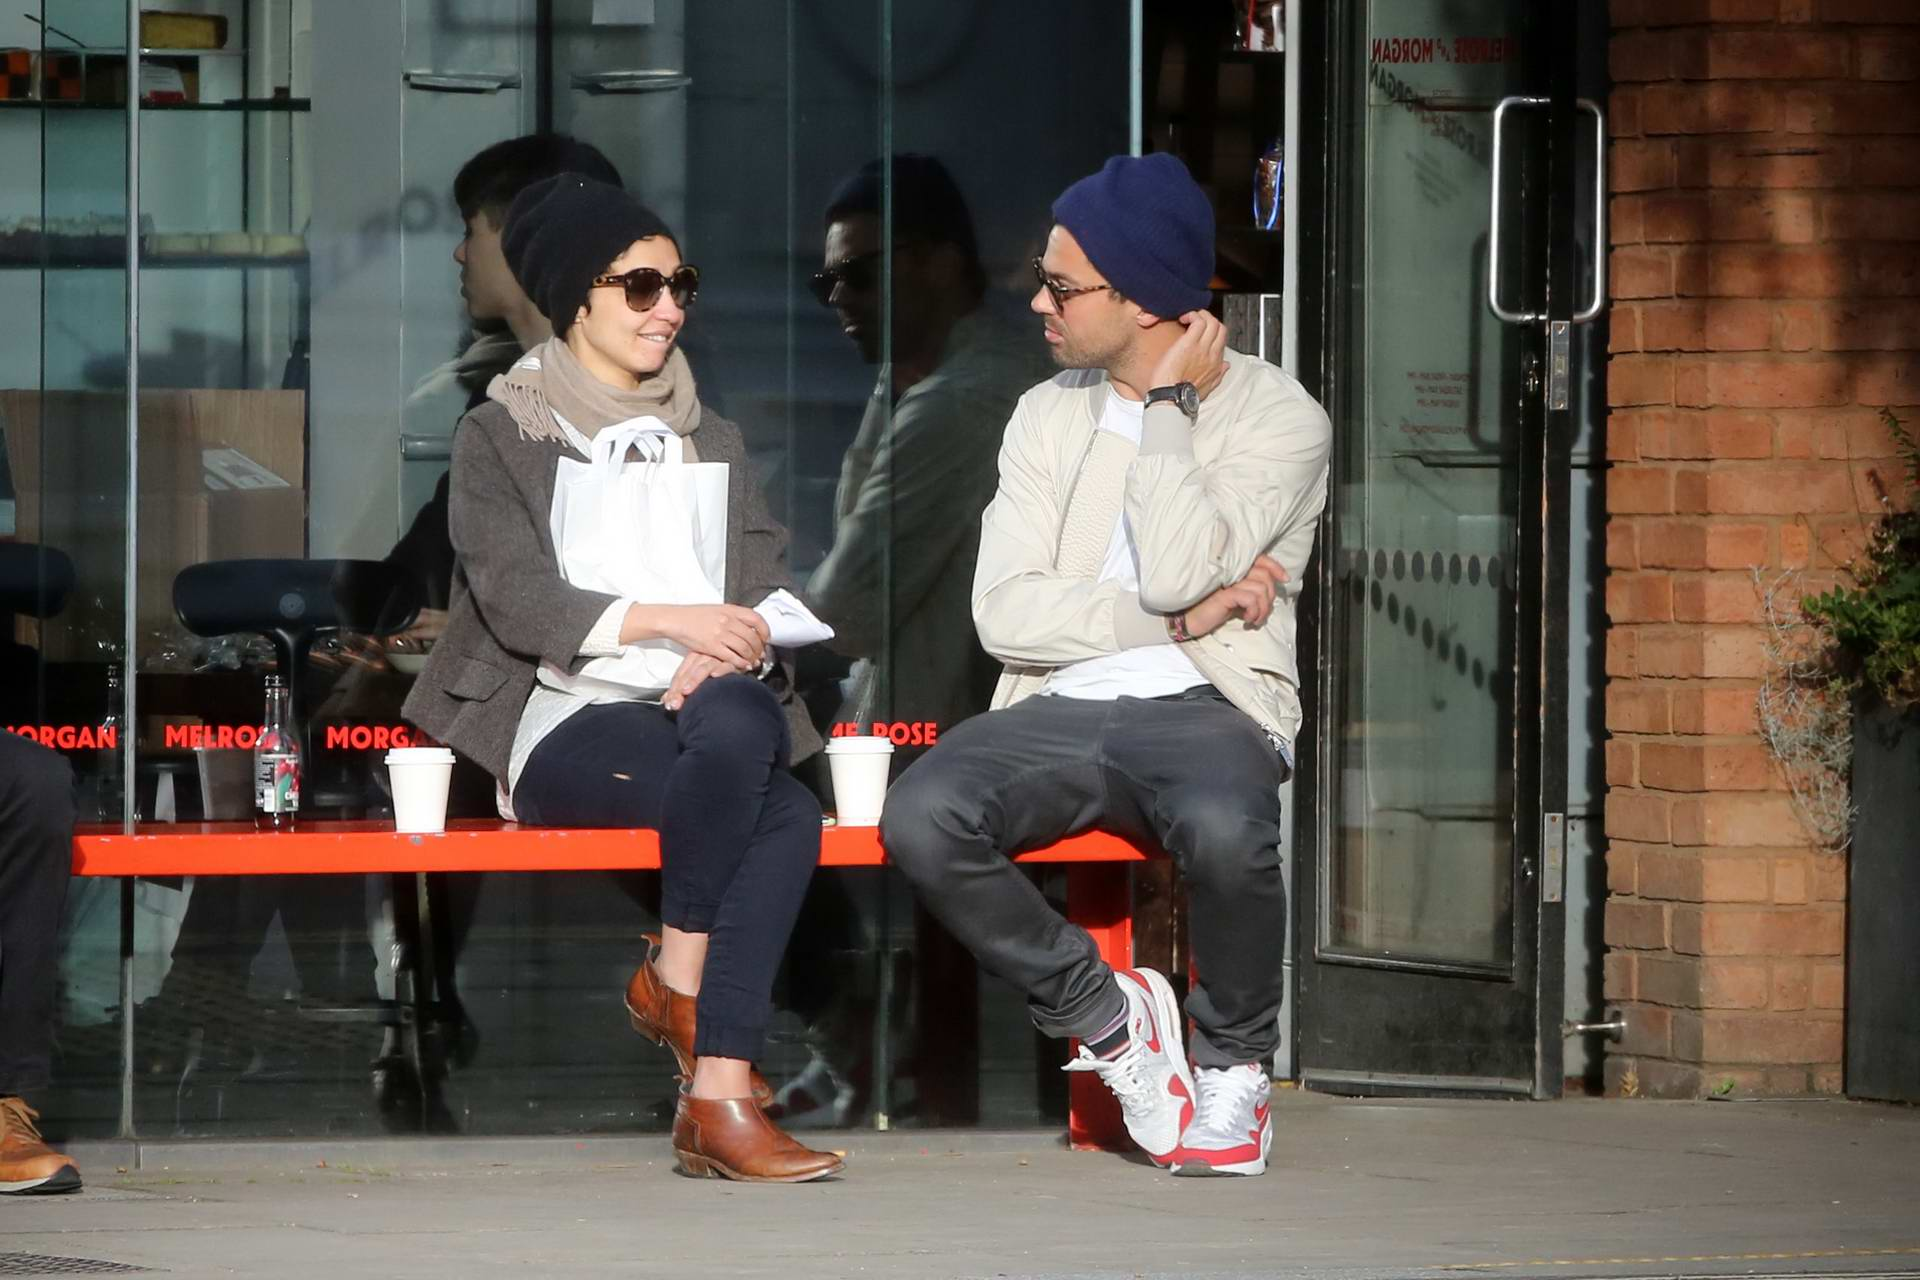 Ruth Negga and Dominic Cooper seen outside Melrose and Morgan in Primrosehill, London